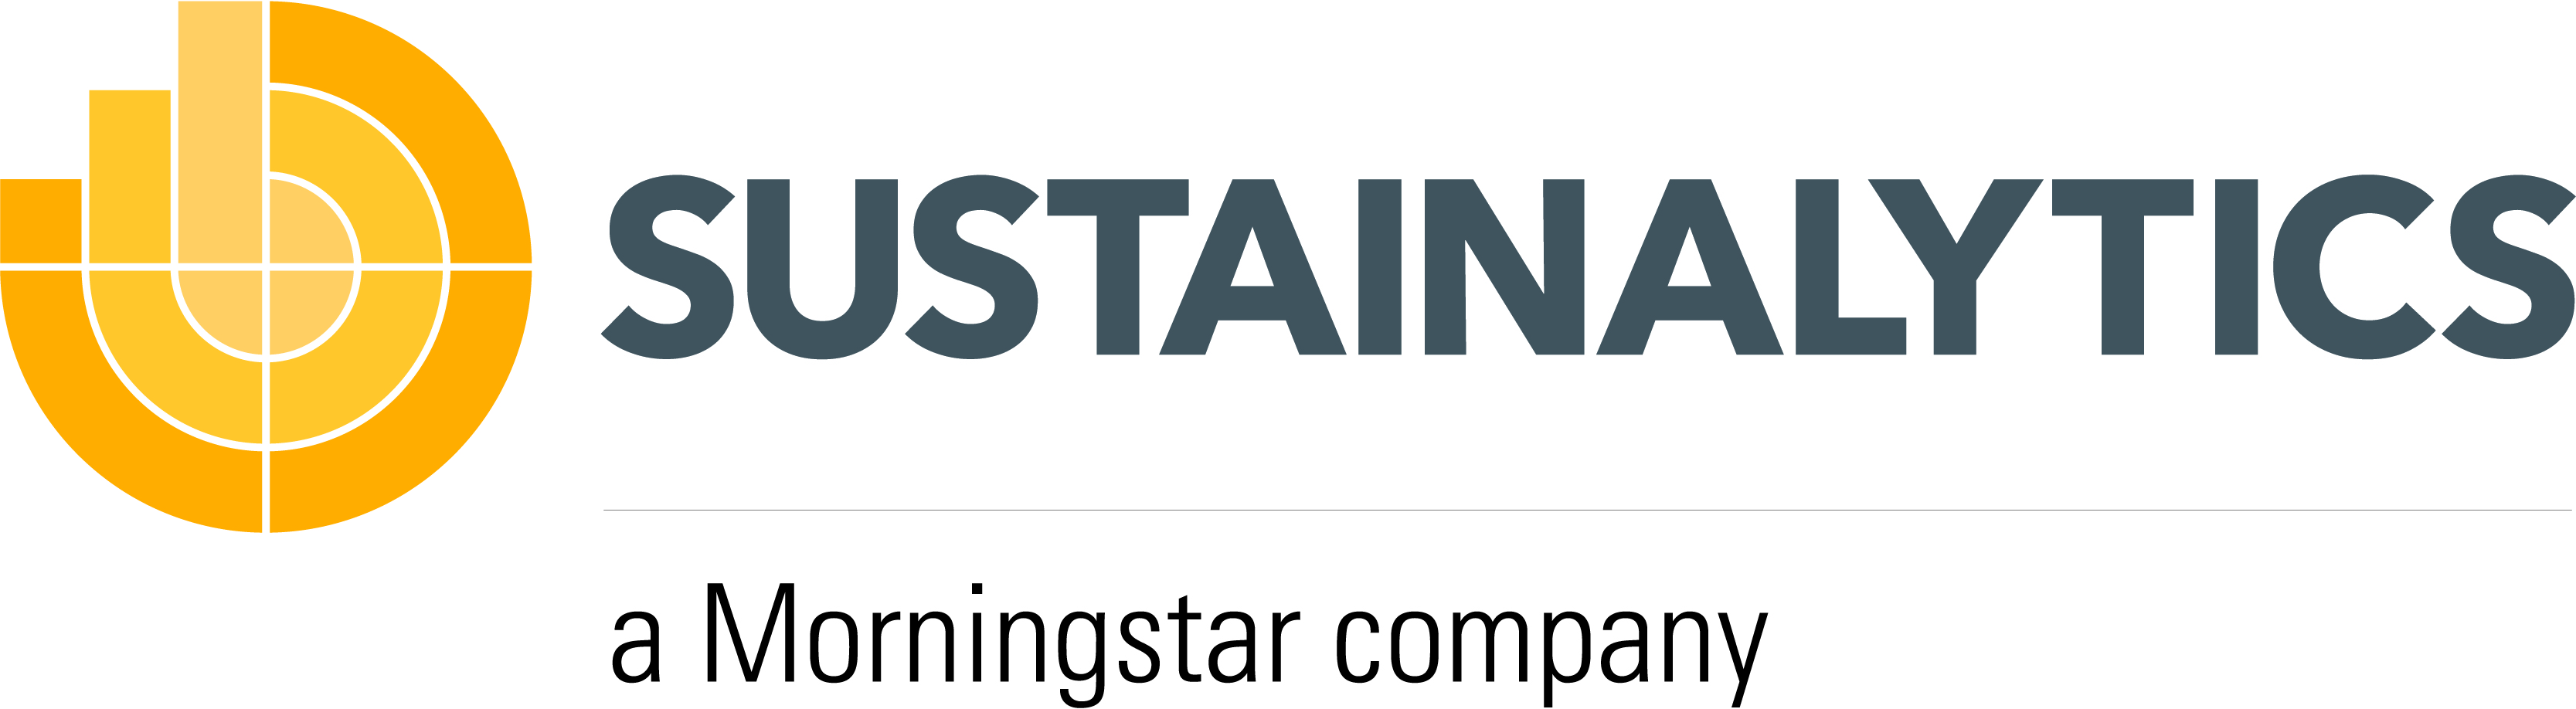 Sustainalytics - company logo